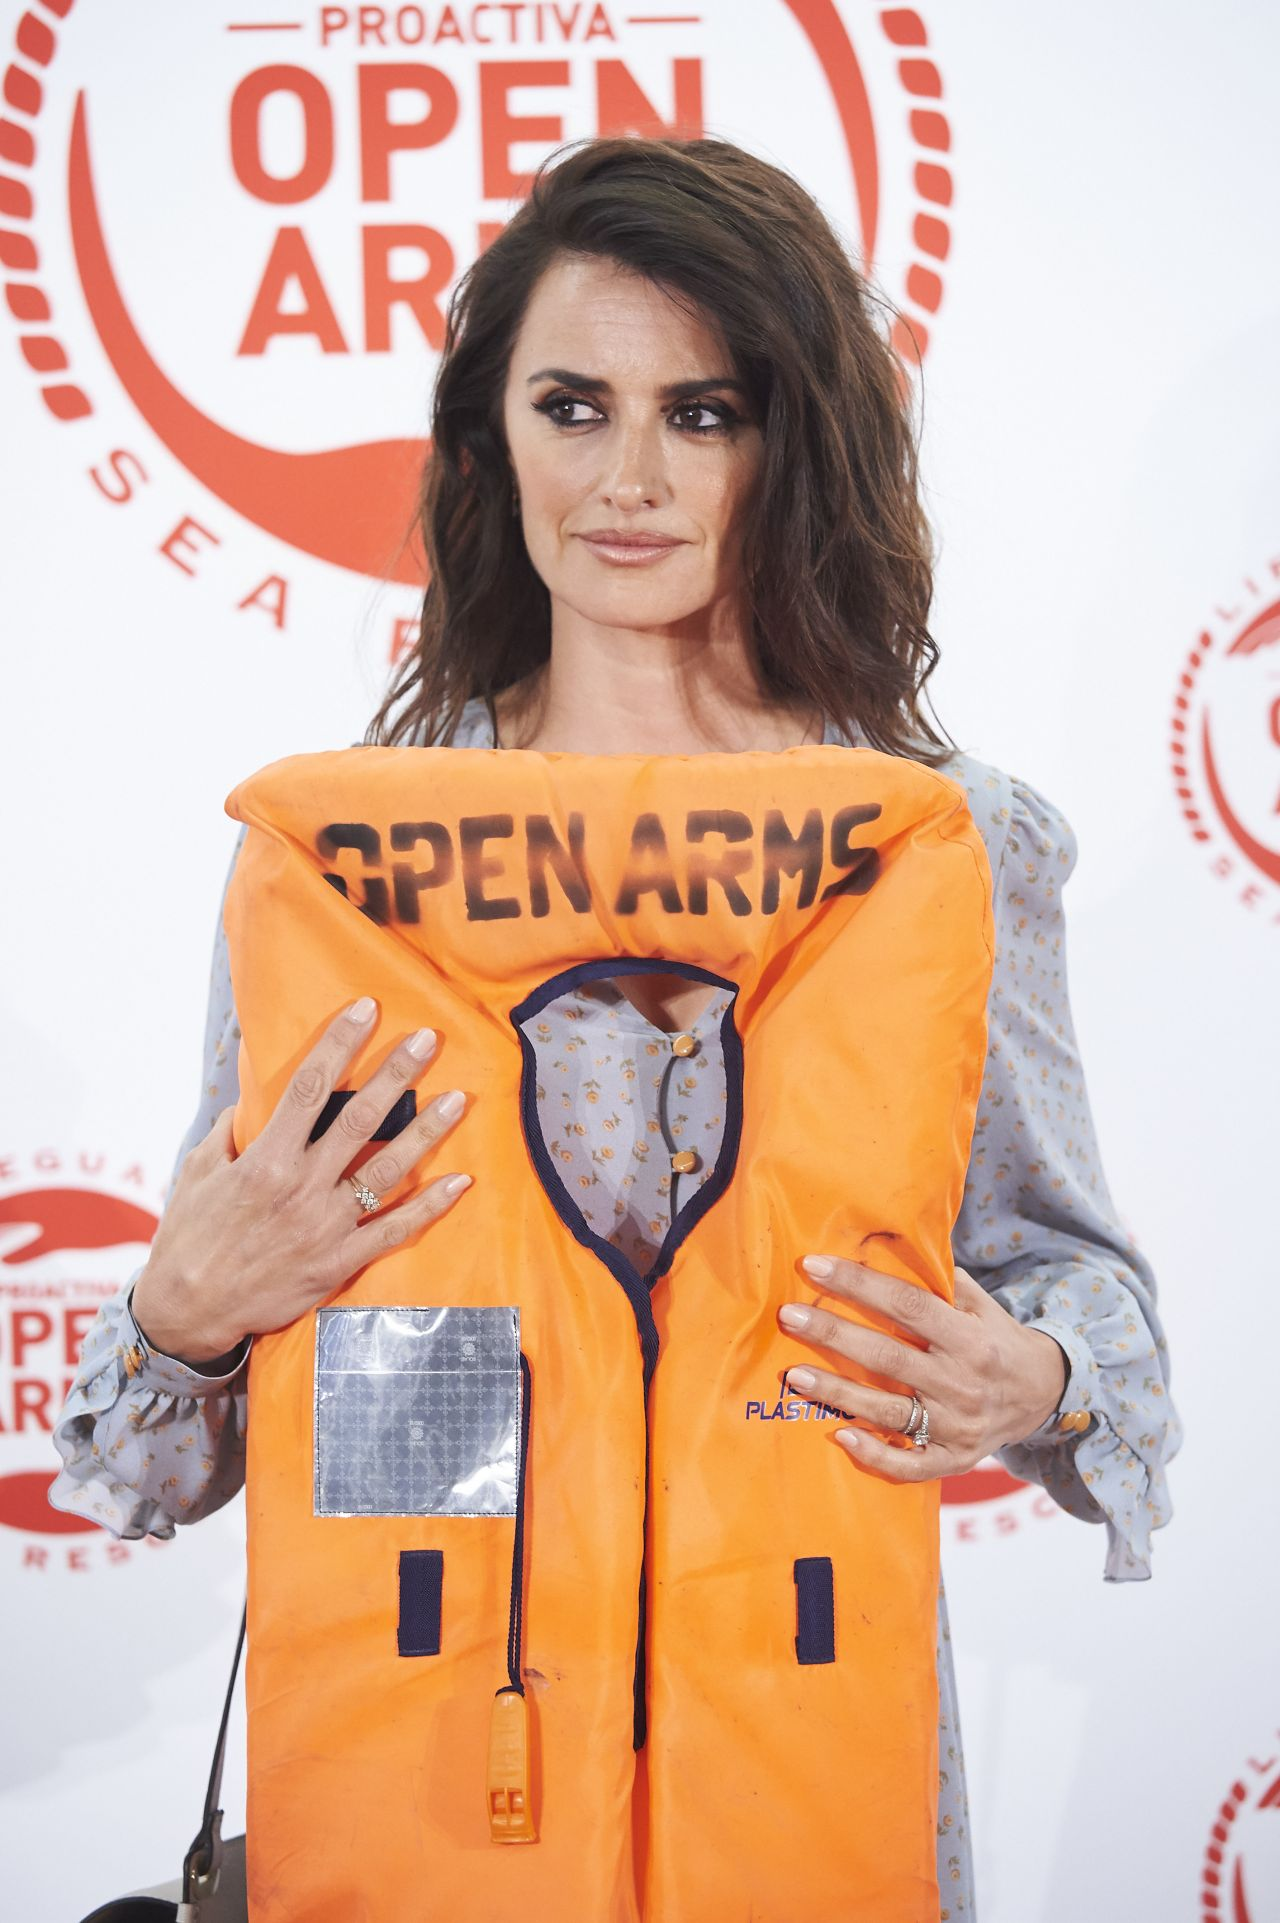 http://celebmafia.com/wp-content/uploads/2018/06/penelope-cruz-proactiva-open-arms-charity-dinner-in-madrid-05-31-2018-10.jpg